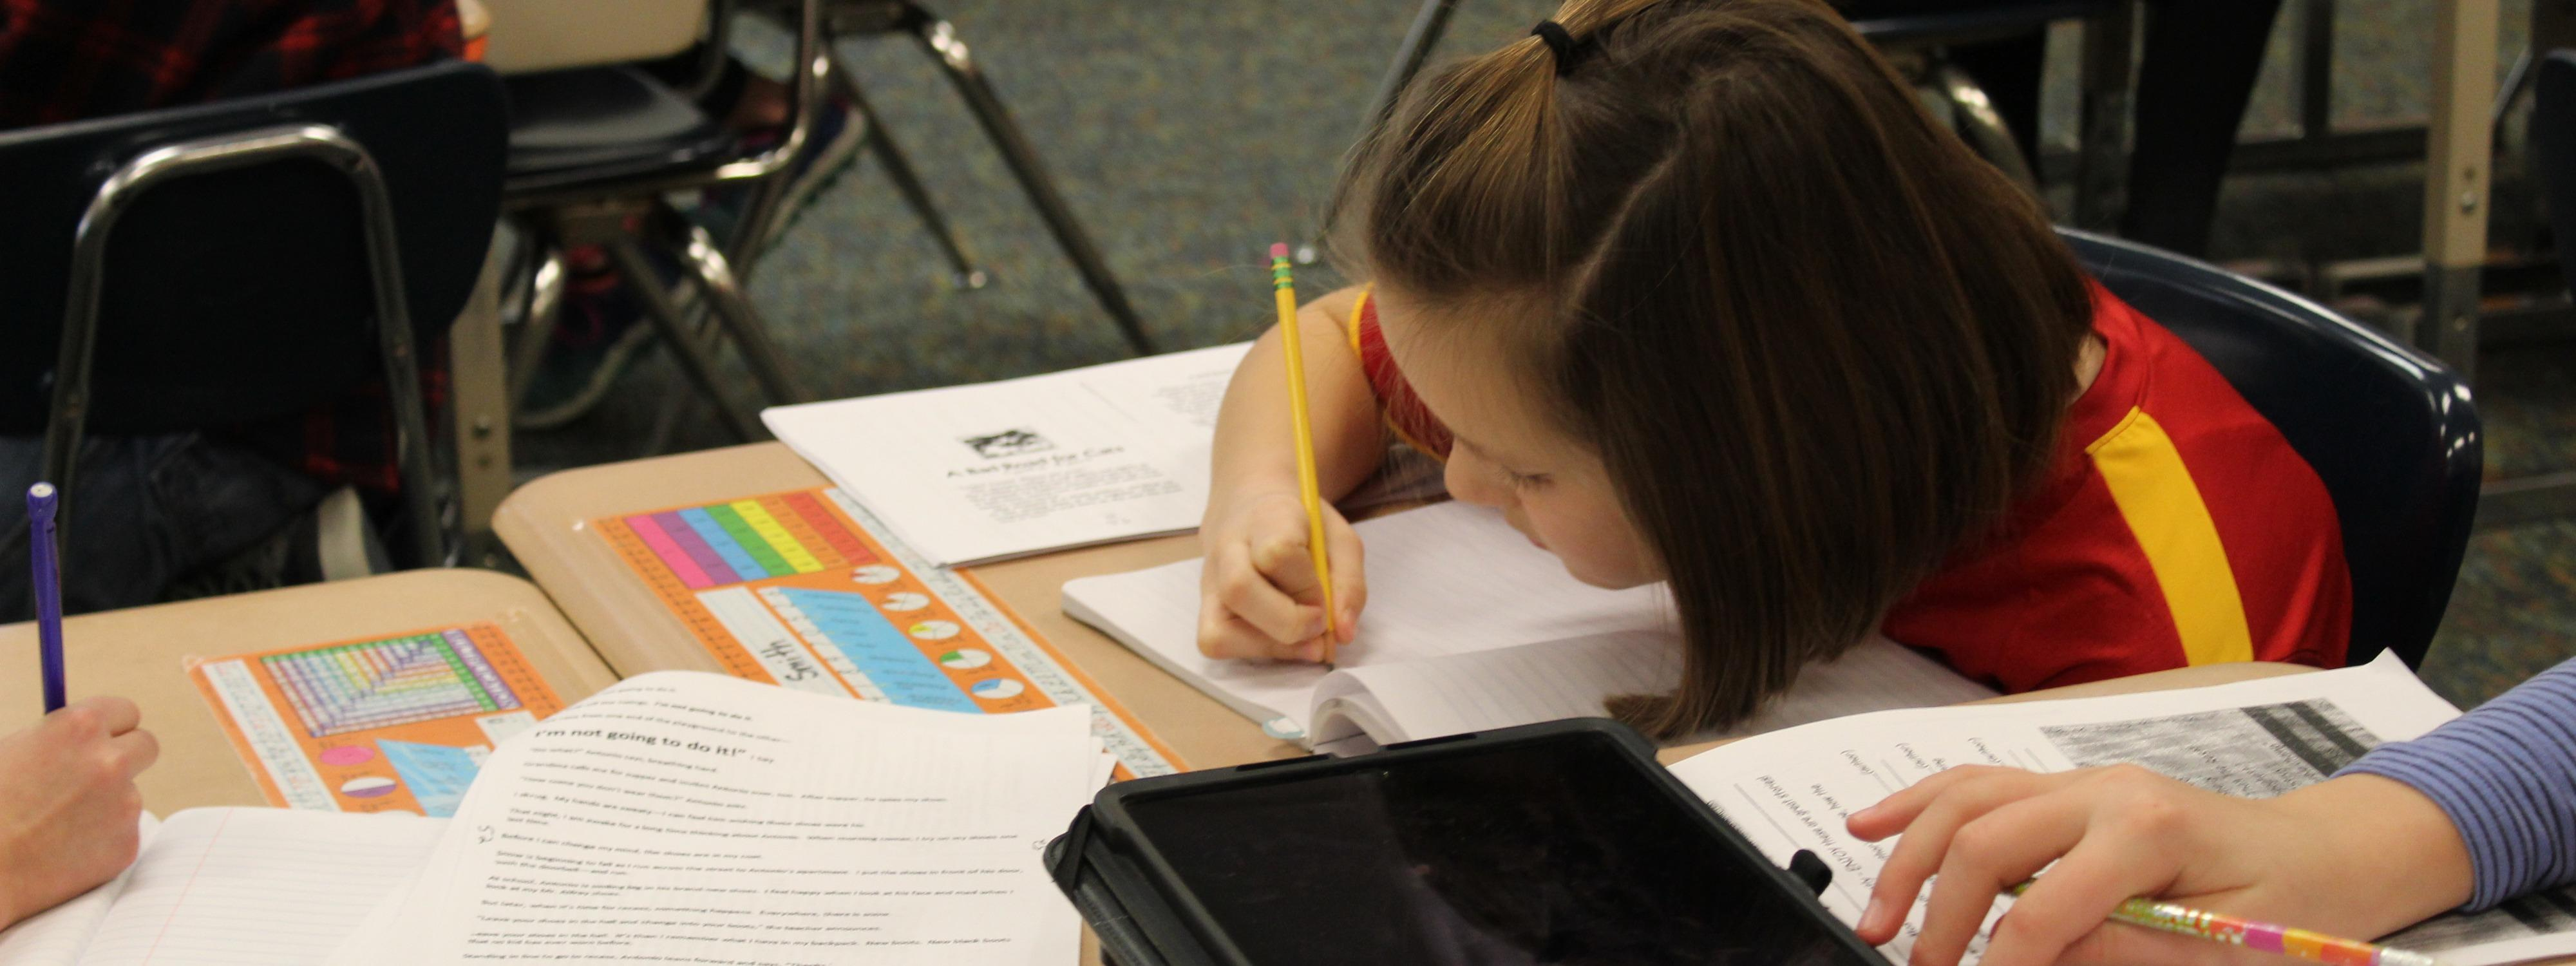 student working on math with an iPad